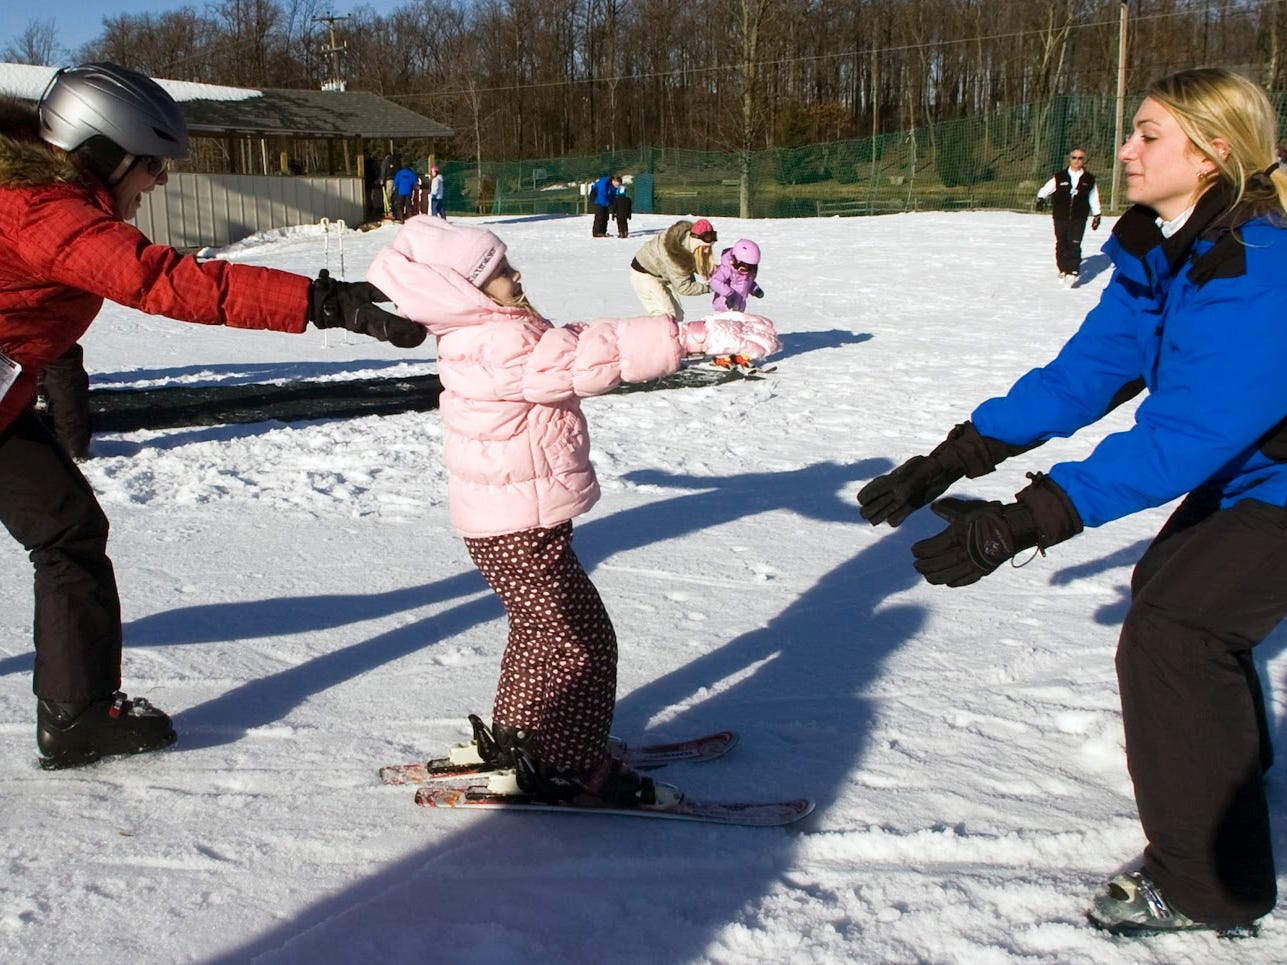 Instructors Nicole Olofson, of Mechanicsburg, left, and and Brie Hershey, of Dillsburg, spot Kylie Sharpe, age 5, of Crofton, Md. Sunday at Ski Roundtop during her first ski class December 27, 2009.